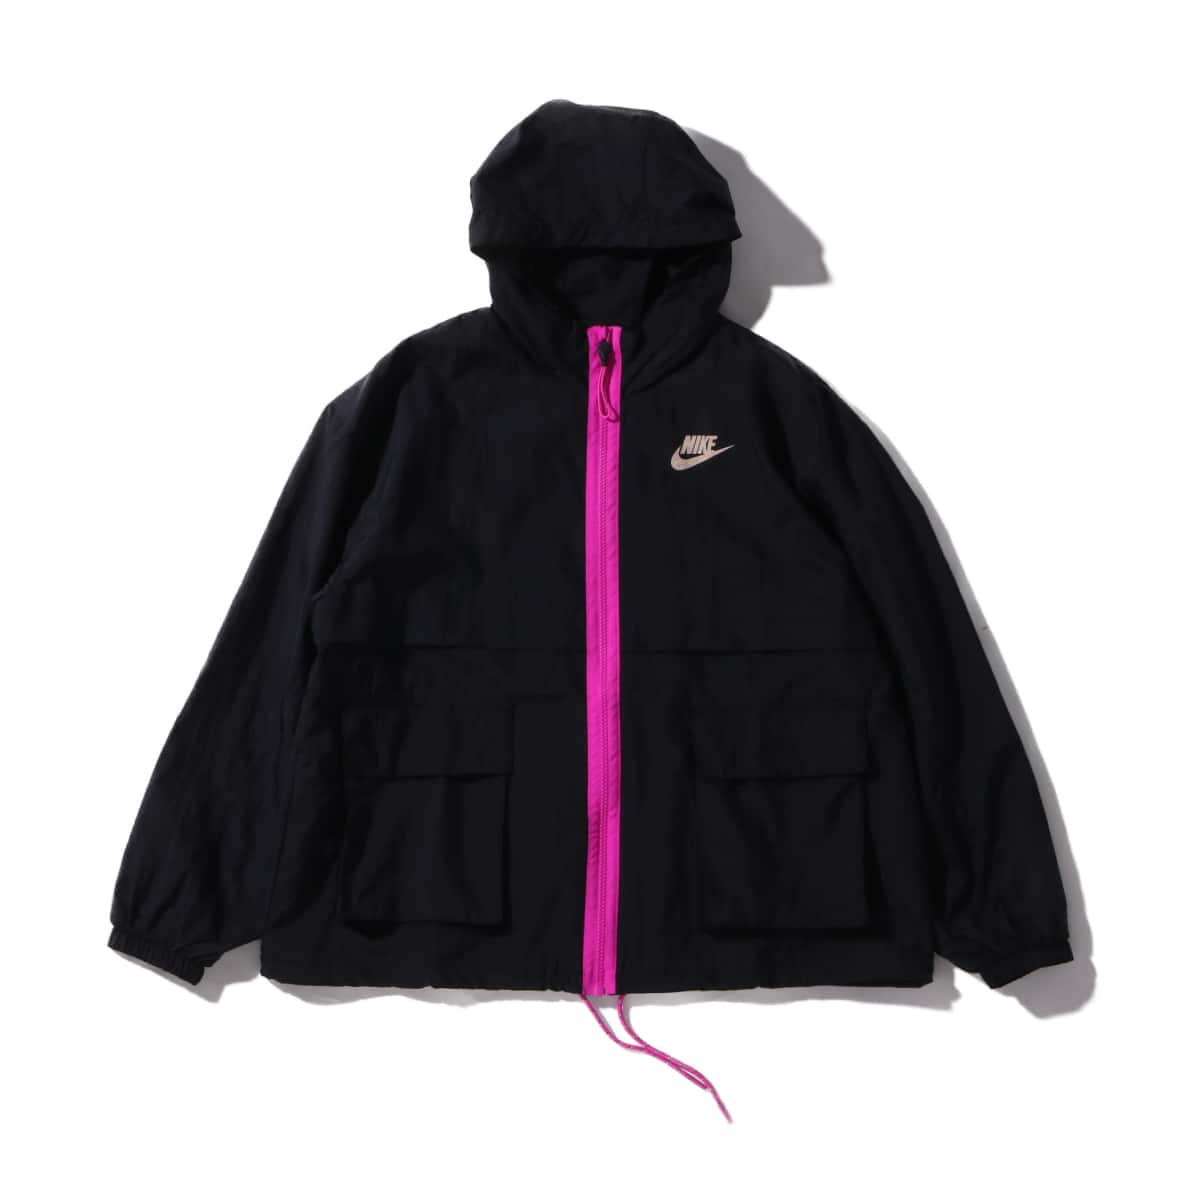 NIKE AS W NSW ICN CLSH JKT WVN BLACK/BLACK/FIRE PINK 20SU-I_photo_large